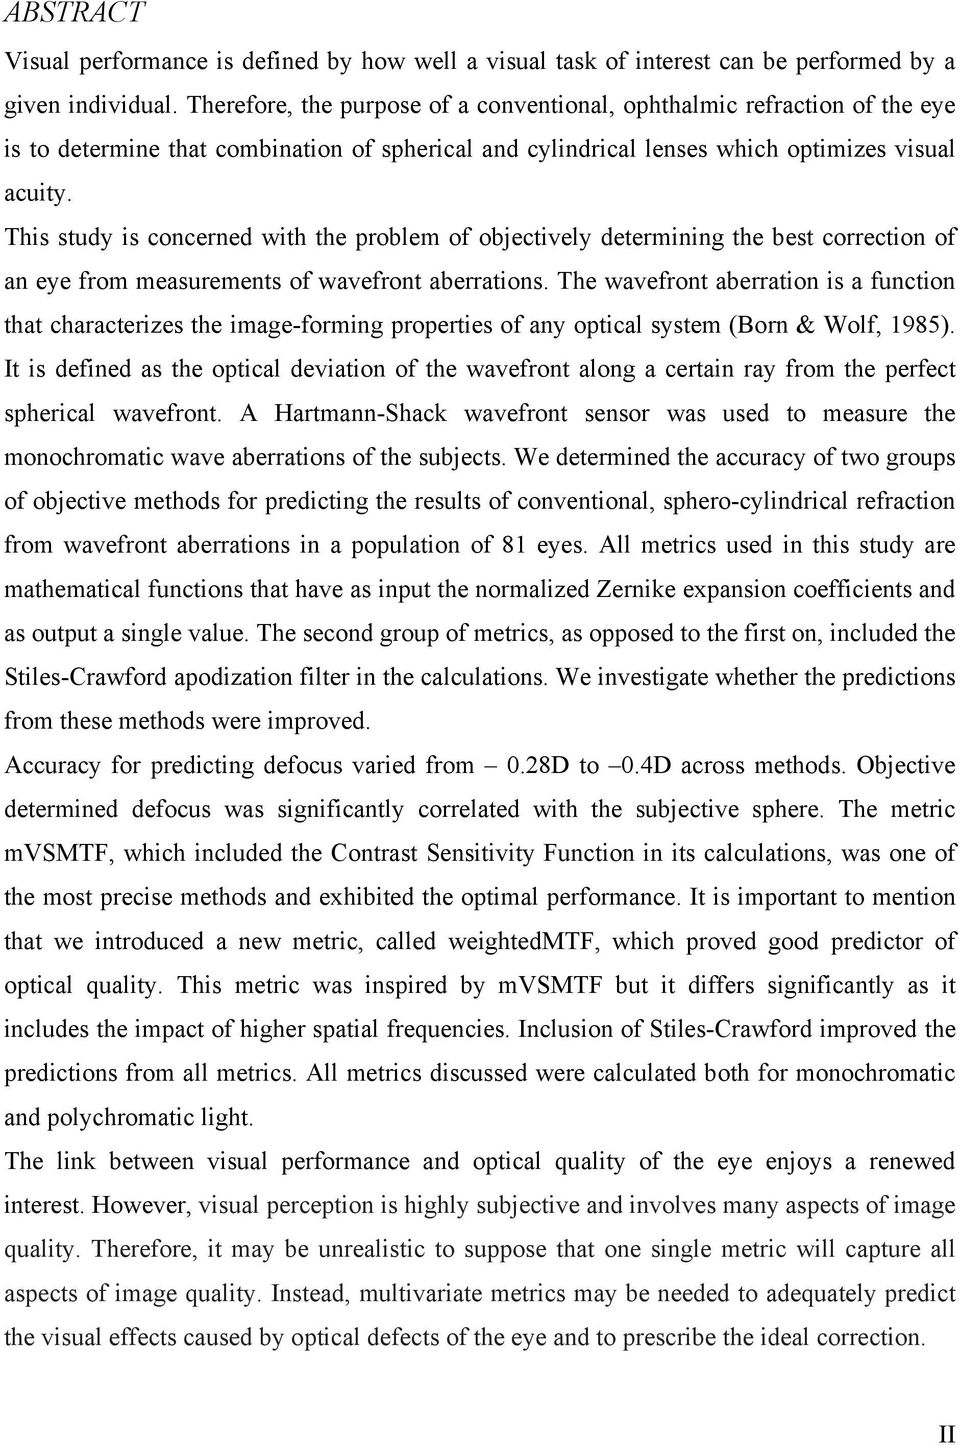 This study is concerned with the problem of objectively determining the best correction of an eye from measurements of wavefront aberrations.